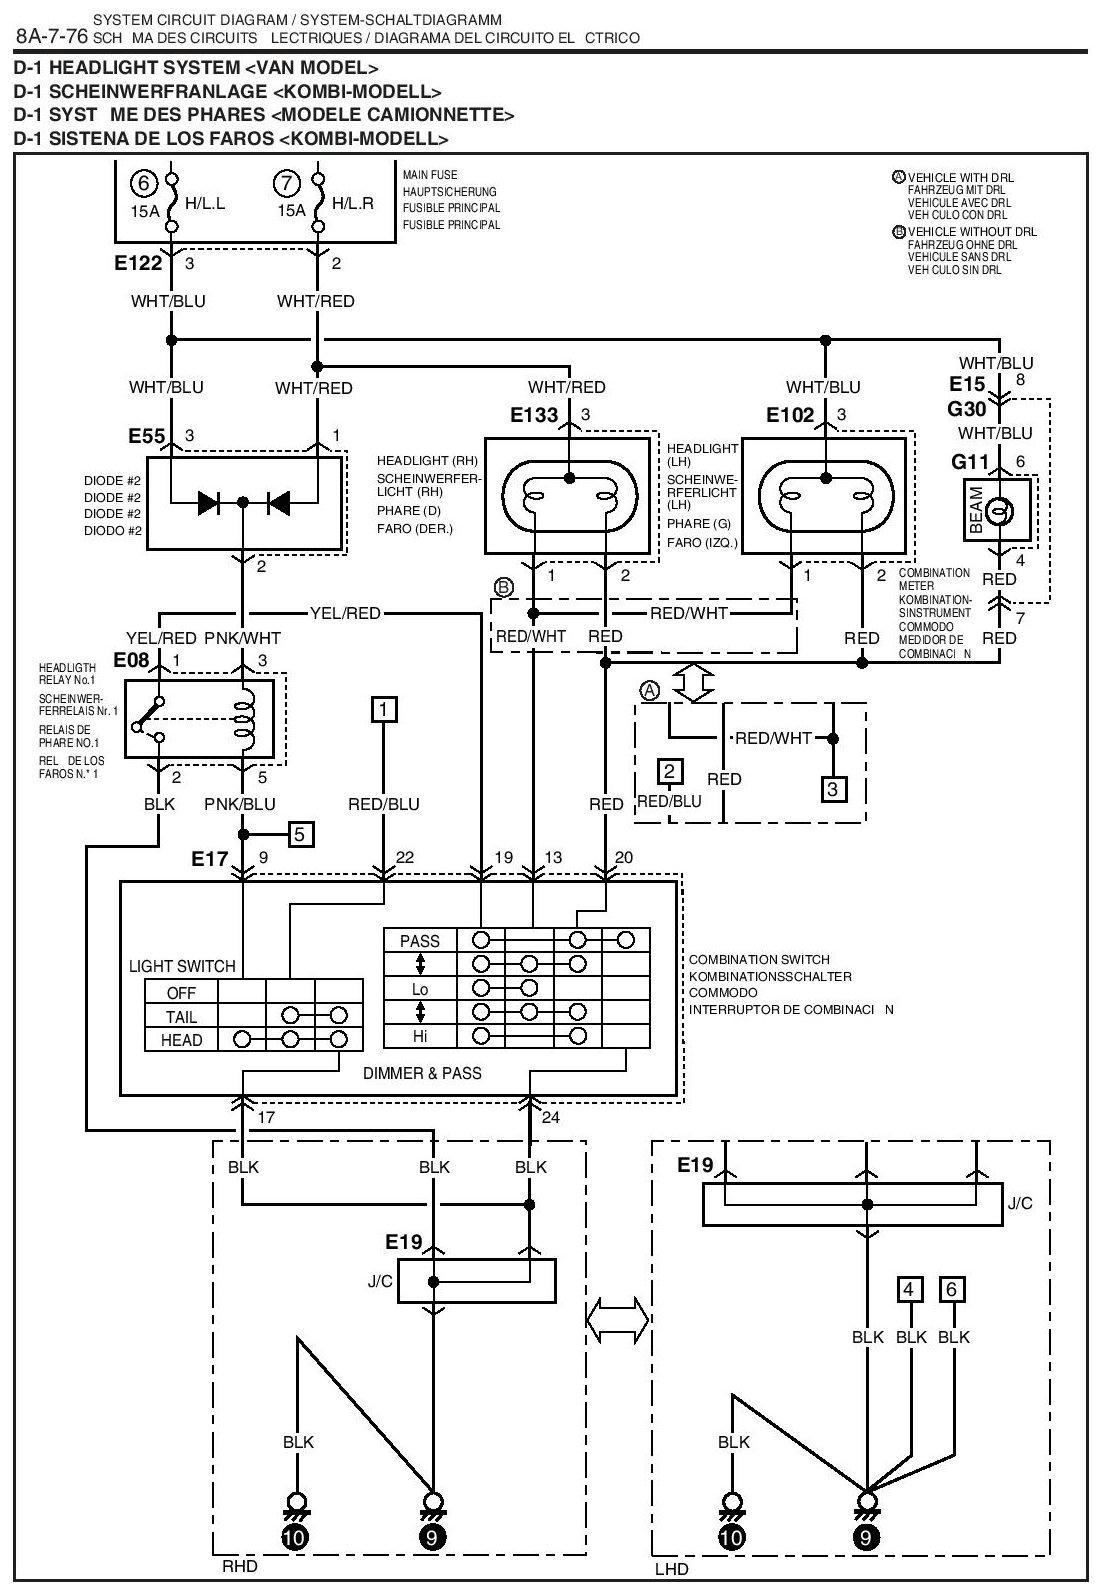 2007 Suzuki Xl7 Fuse Box Diagram • Wiring Diagram For Free